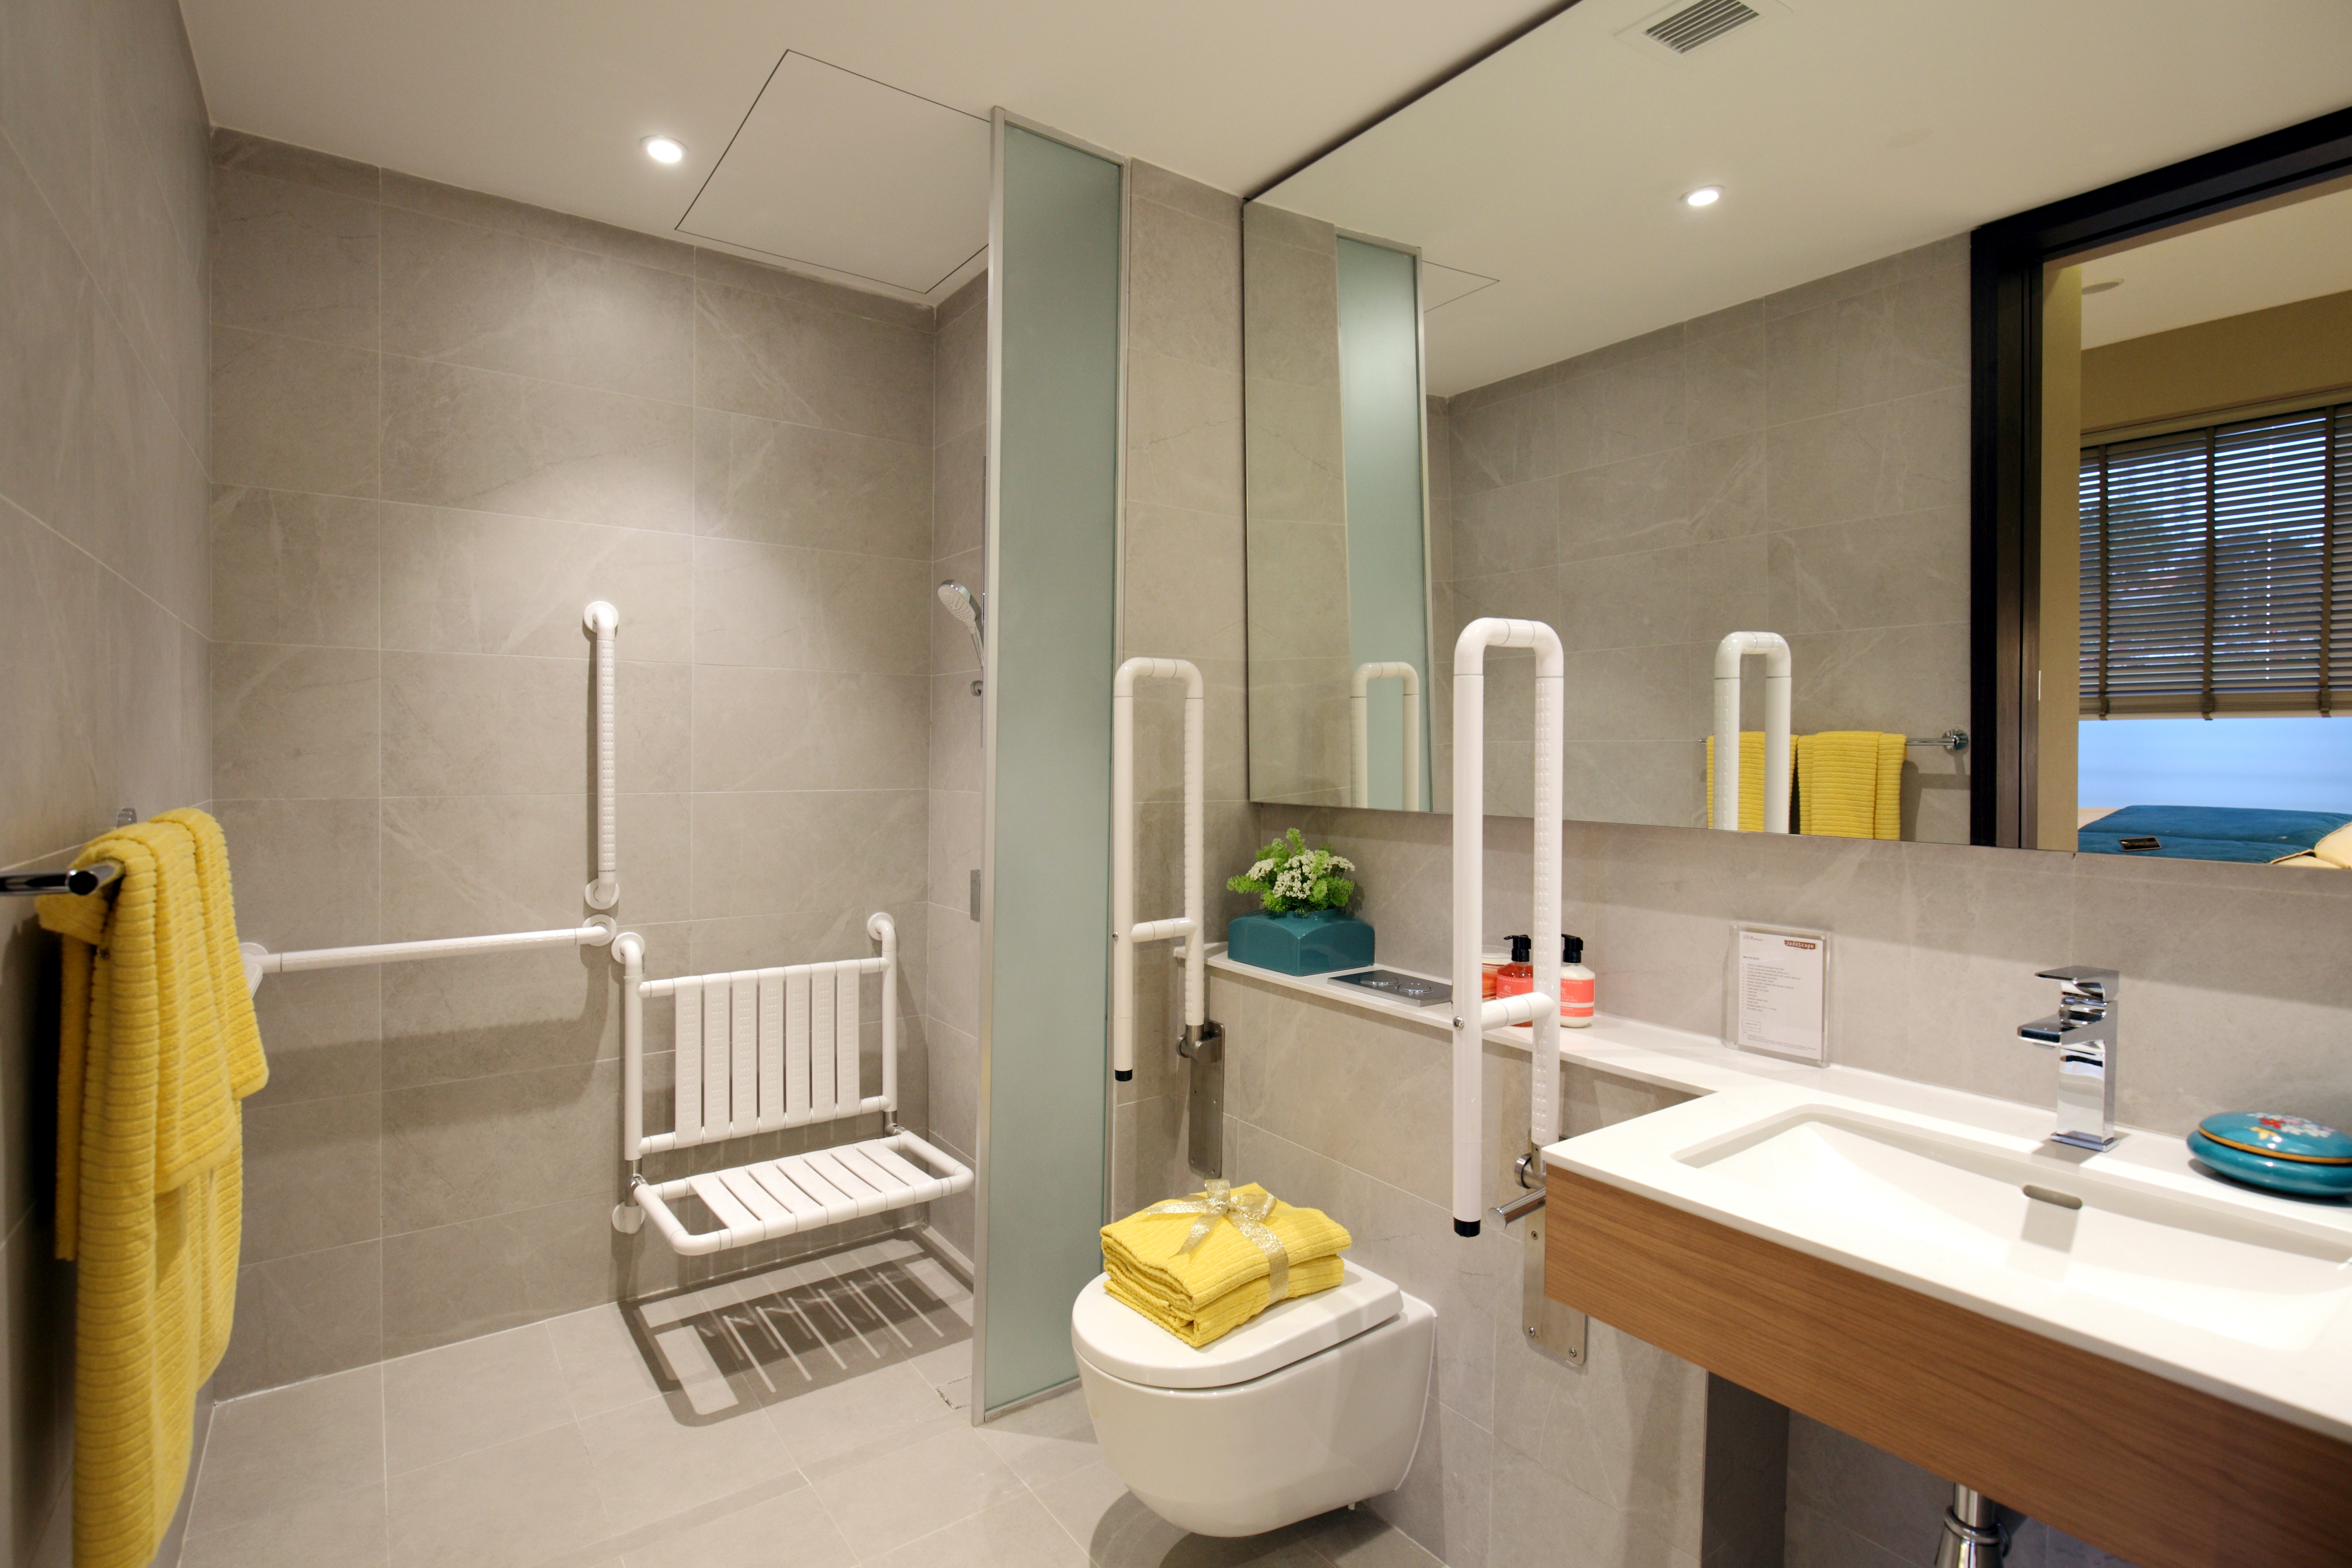 A show suite of a 'Gold Standard' one-bedroom unit and bathroom catering to active senior living - EDGEPROP SINGAPORE